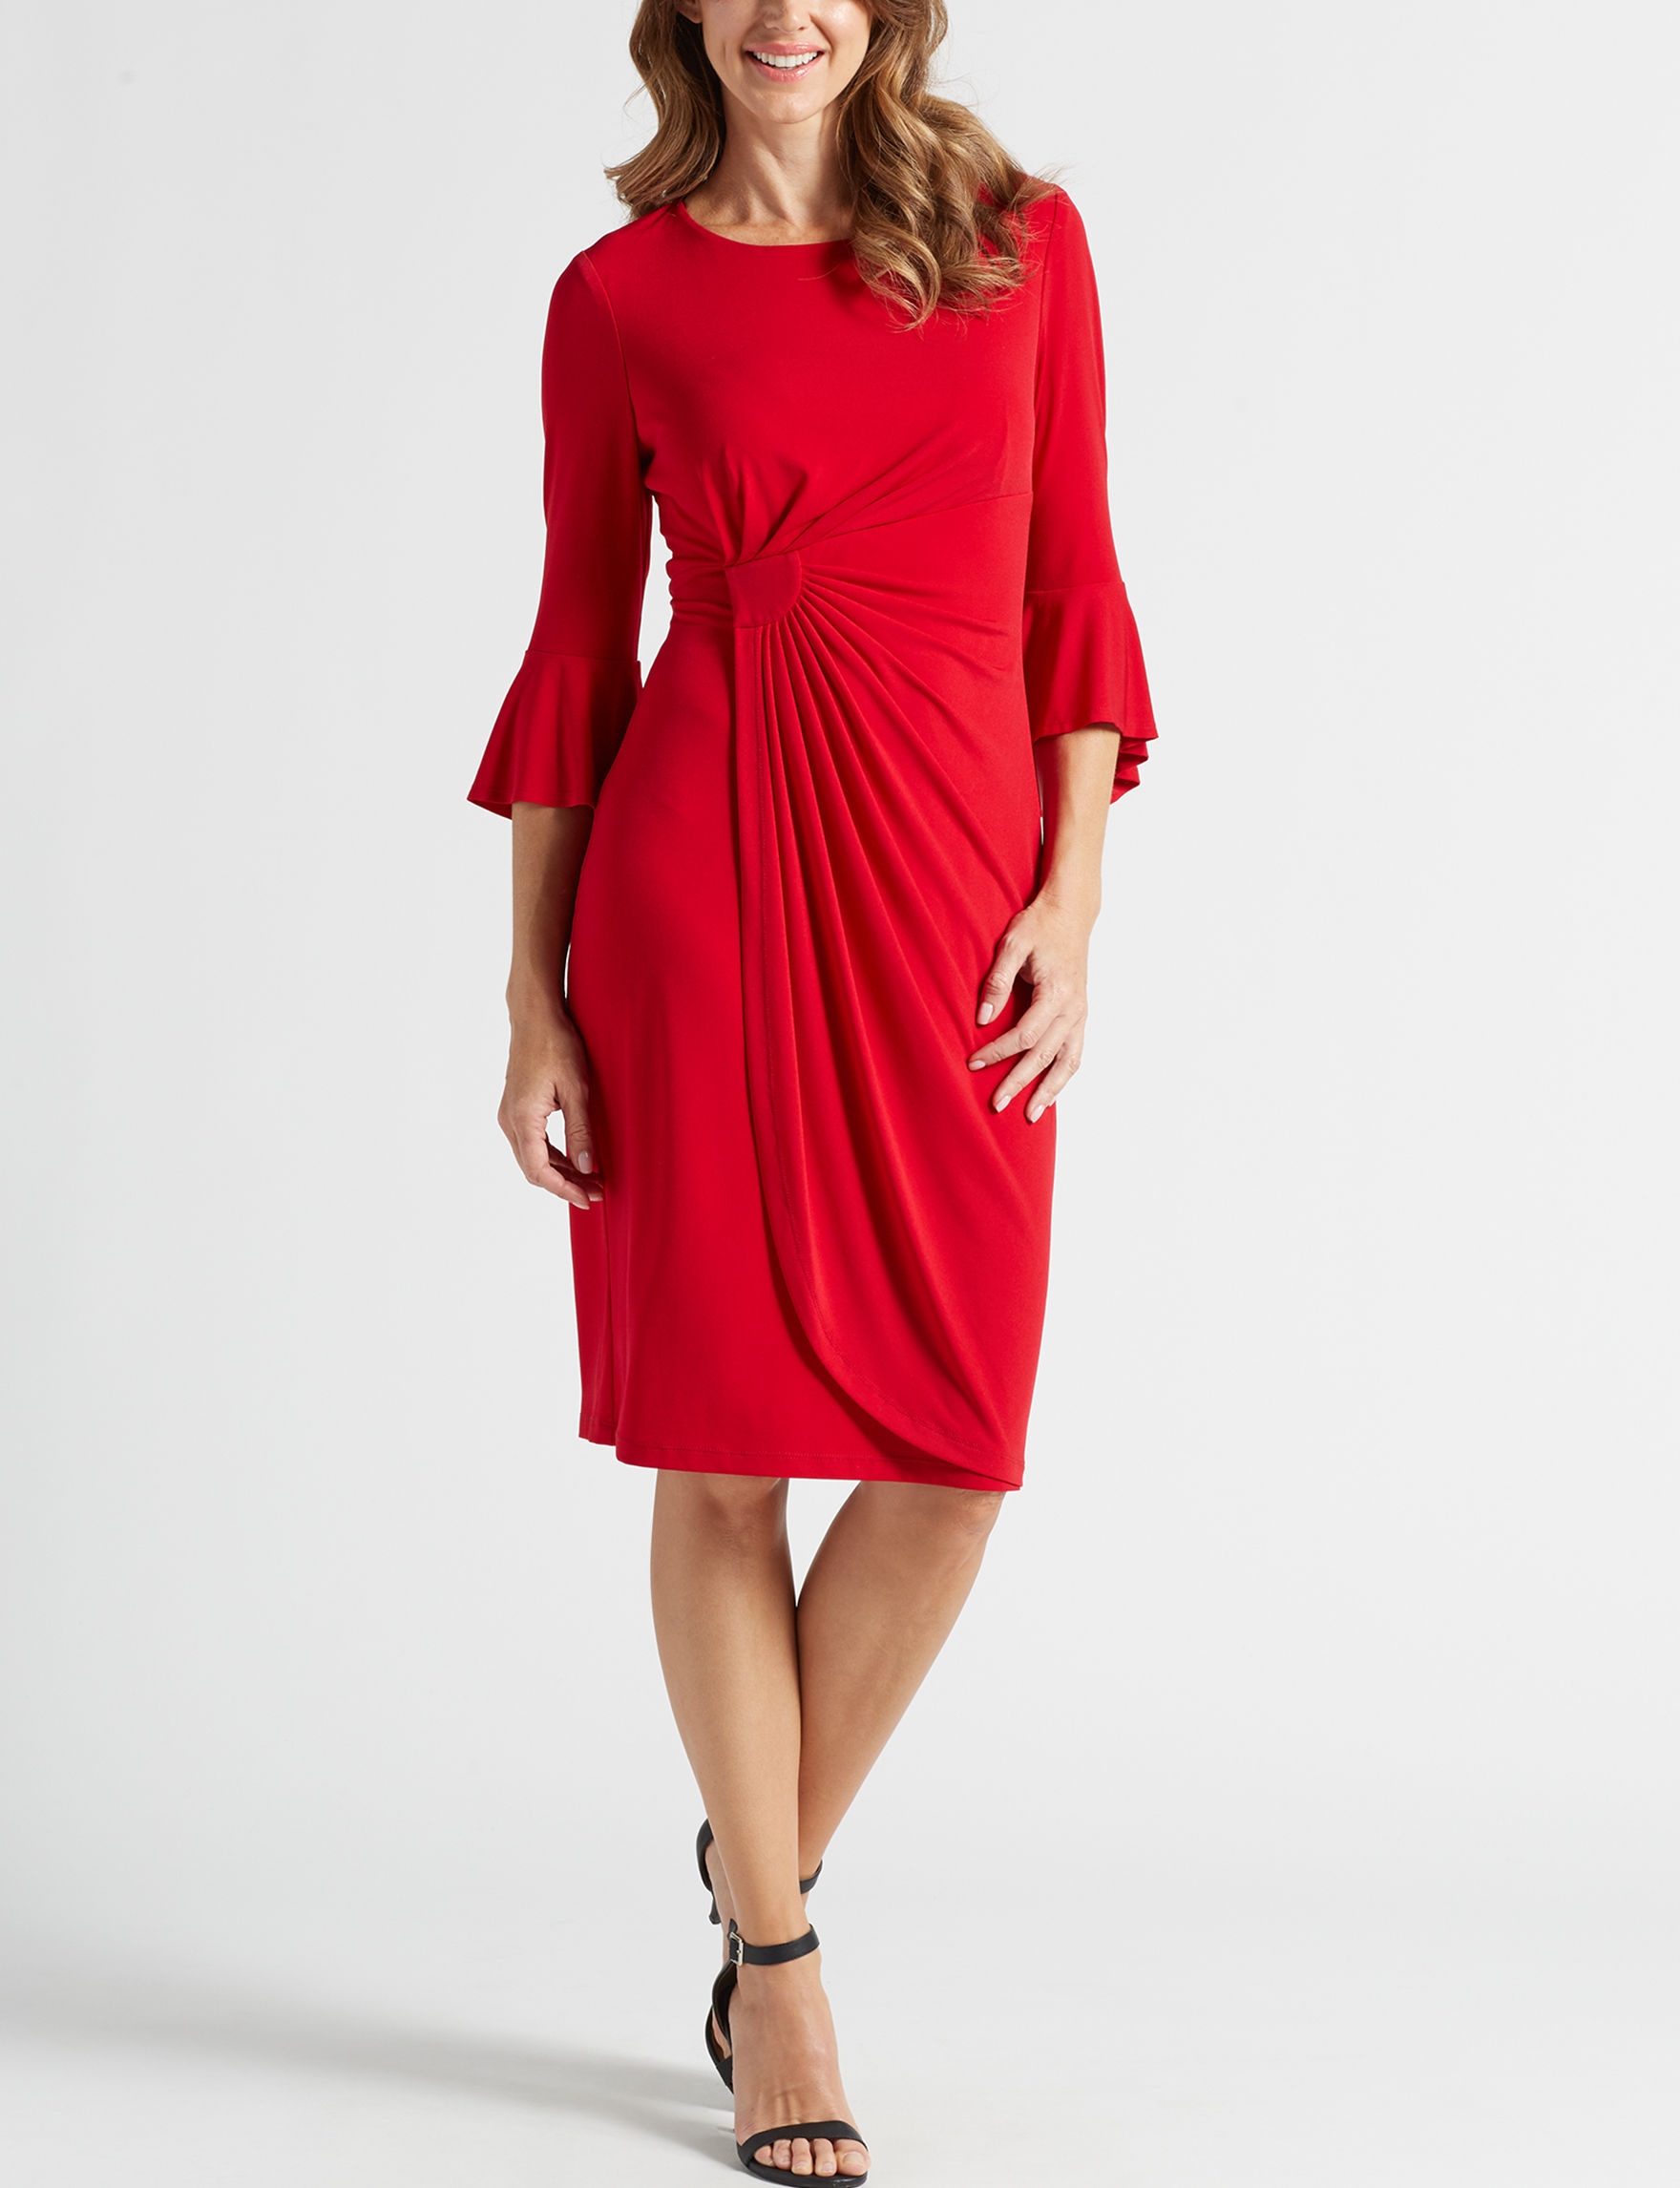 Connected Red Cocktail & Party Evening & Formal Sheath Dresses